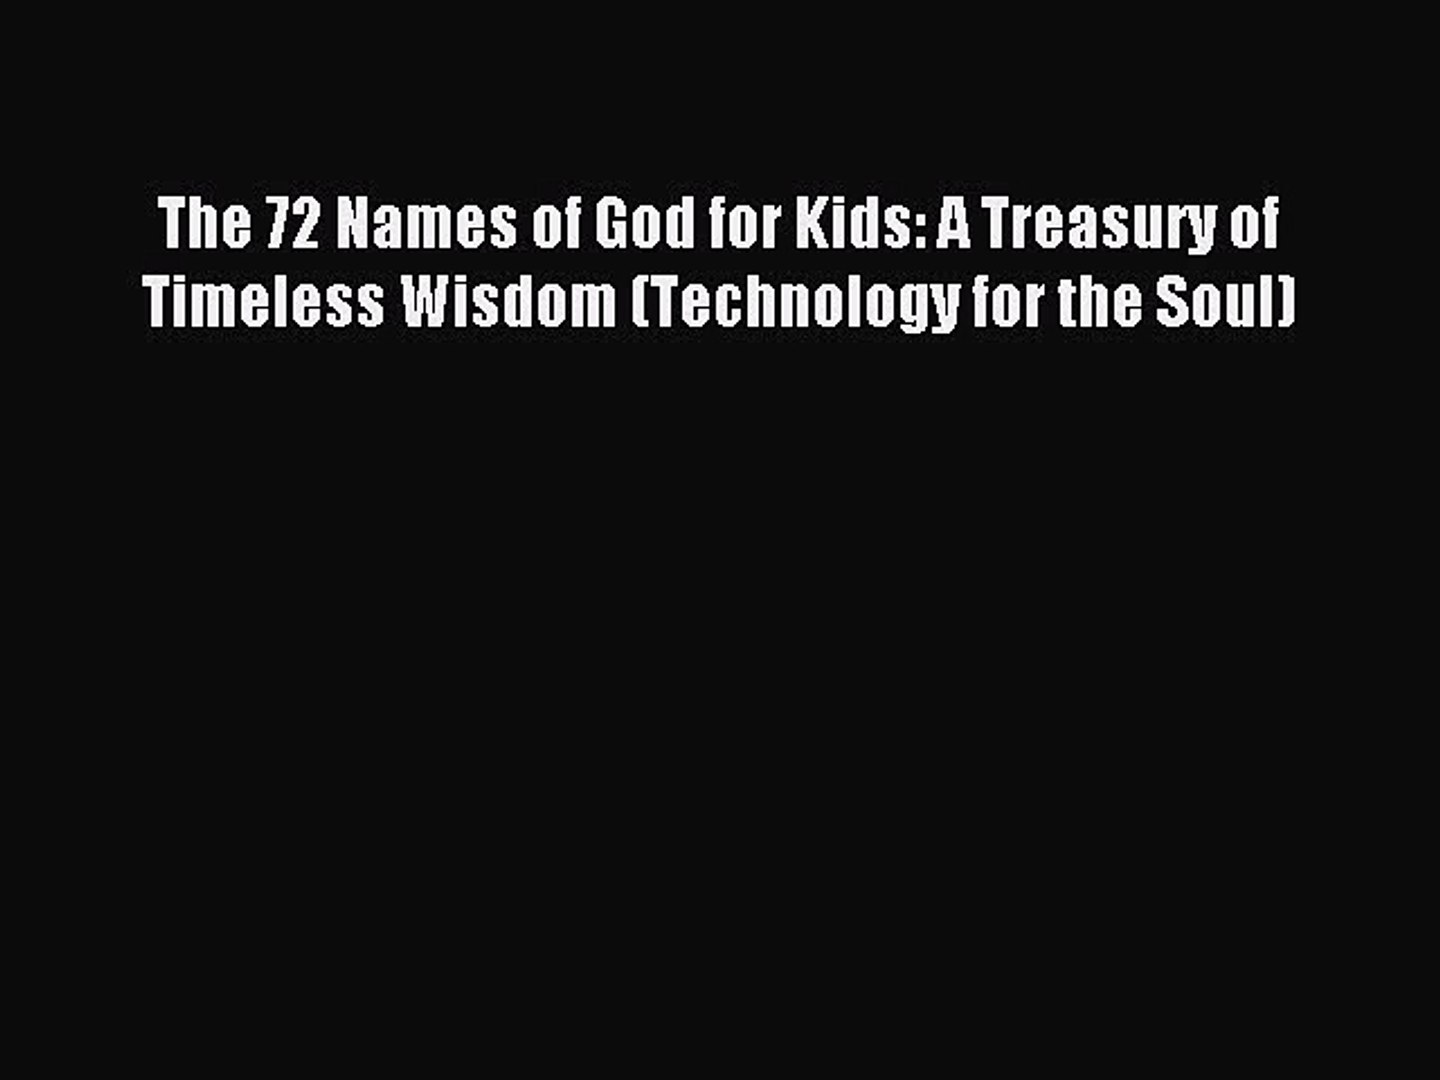 Download The 72 Names of God for Kids: A Treasury of Timeless Wisdom  (Technology for the Soul)